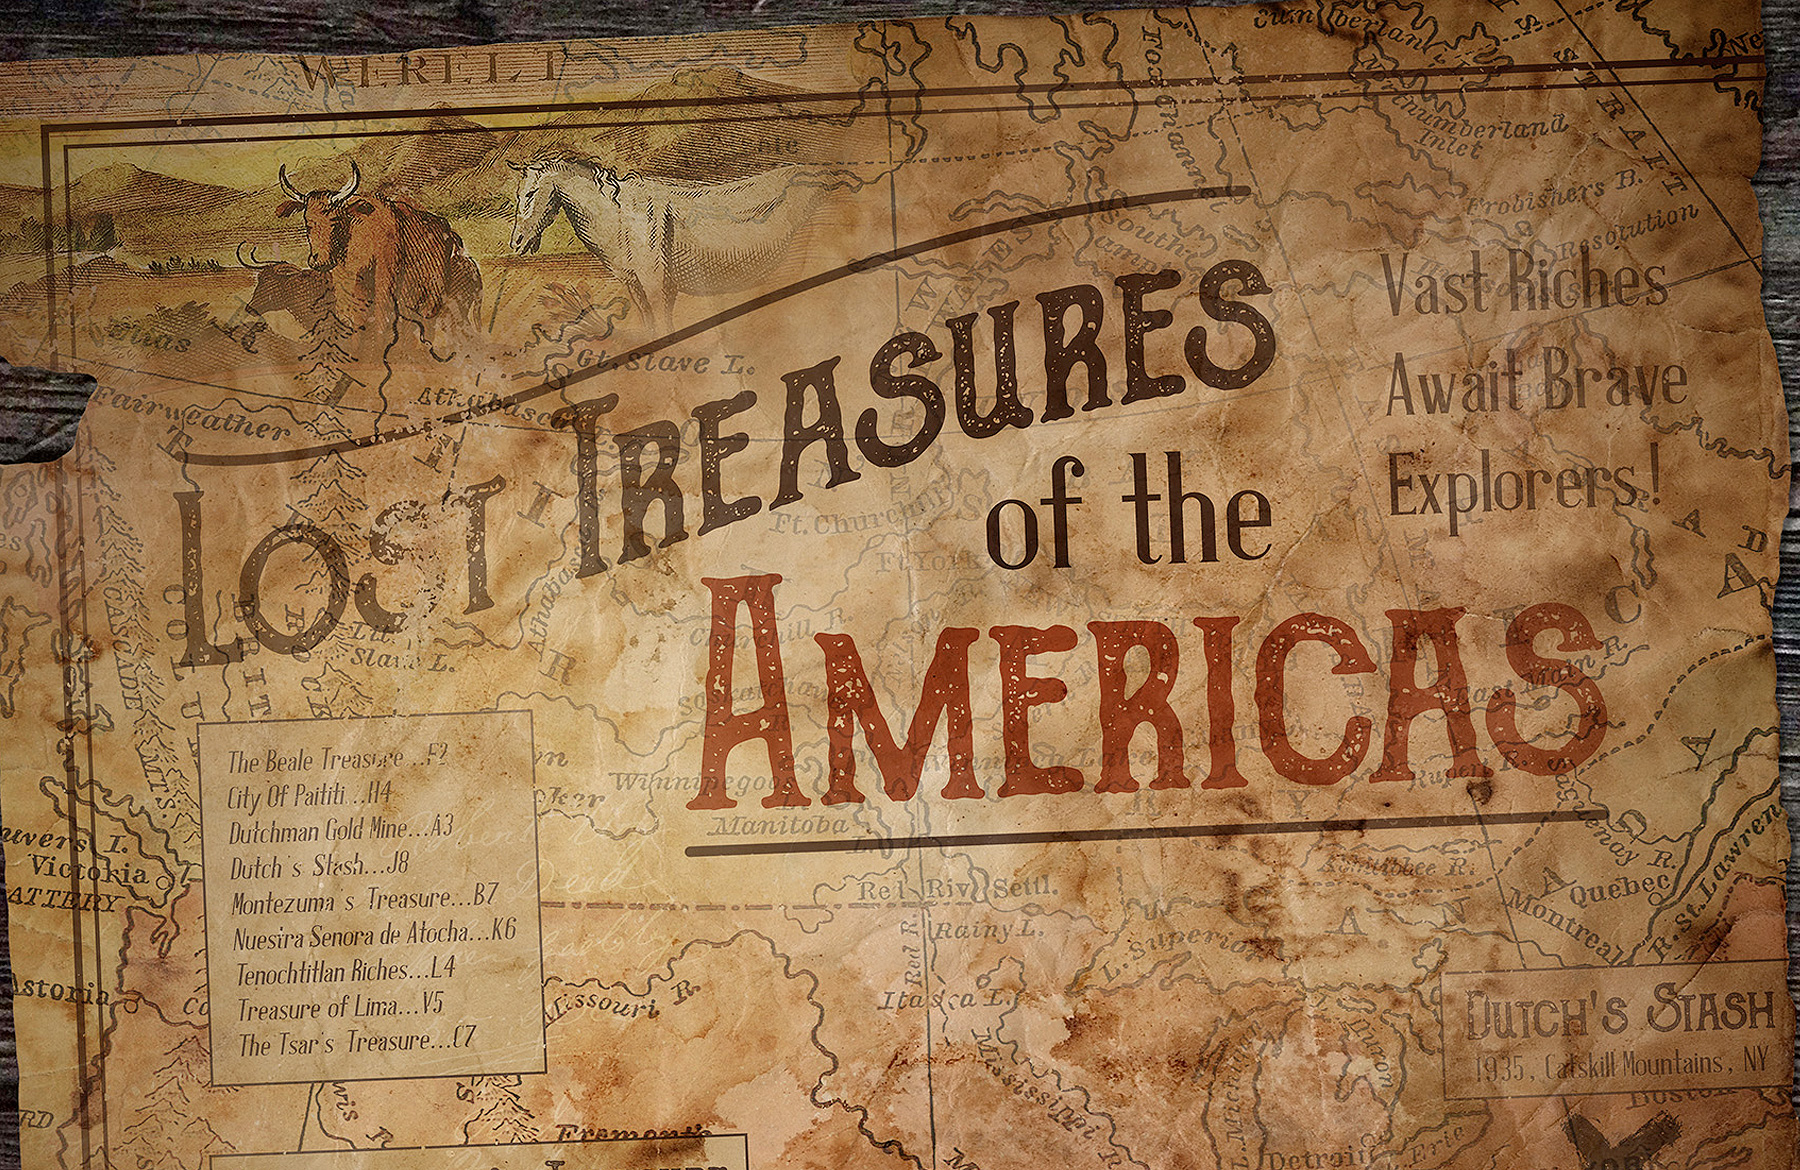 How To Make A Book Cover Look Old And Worn ~ Create a vintage treasure map in photoshop design cuts